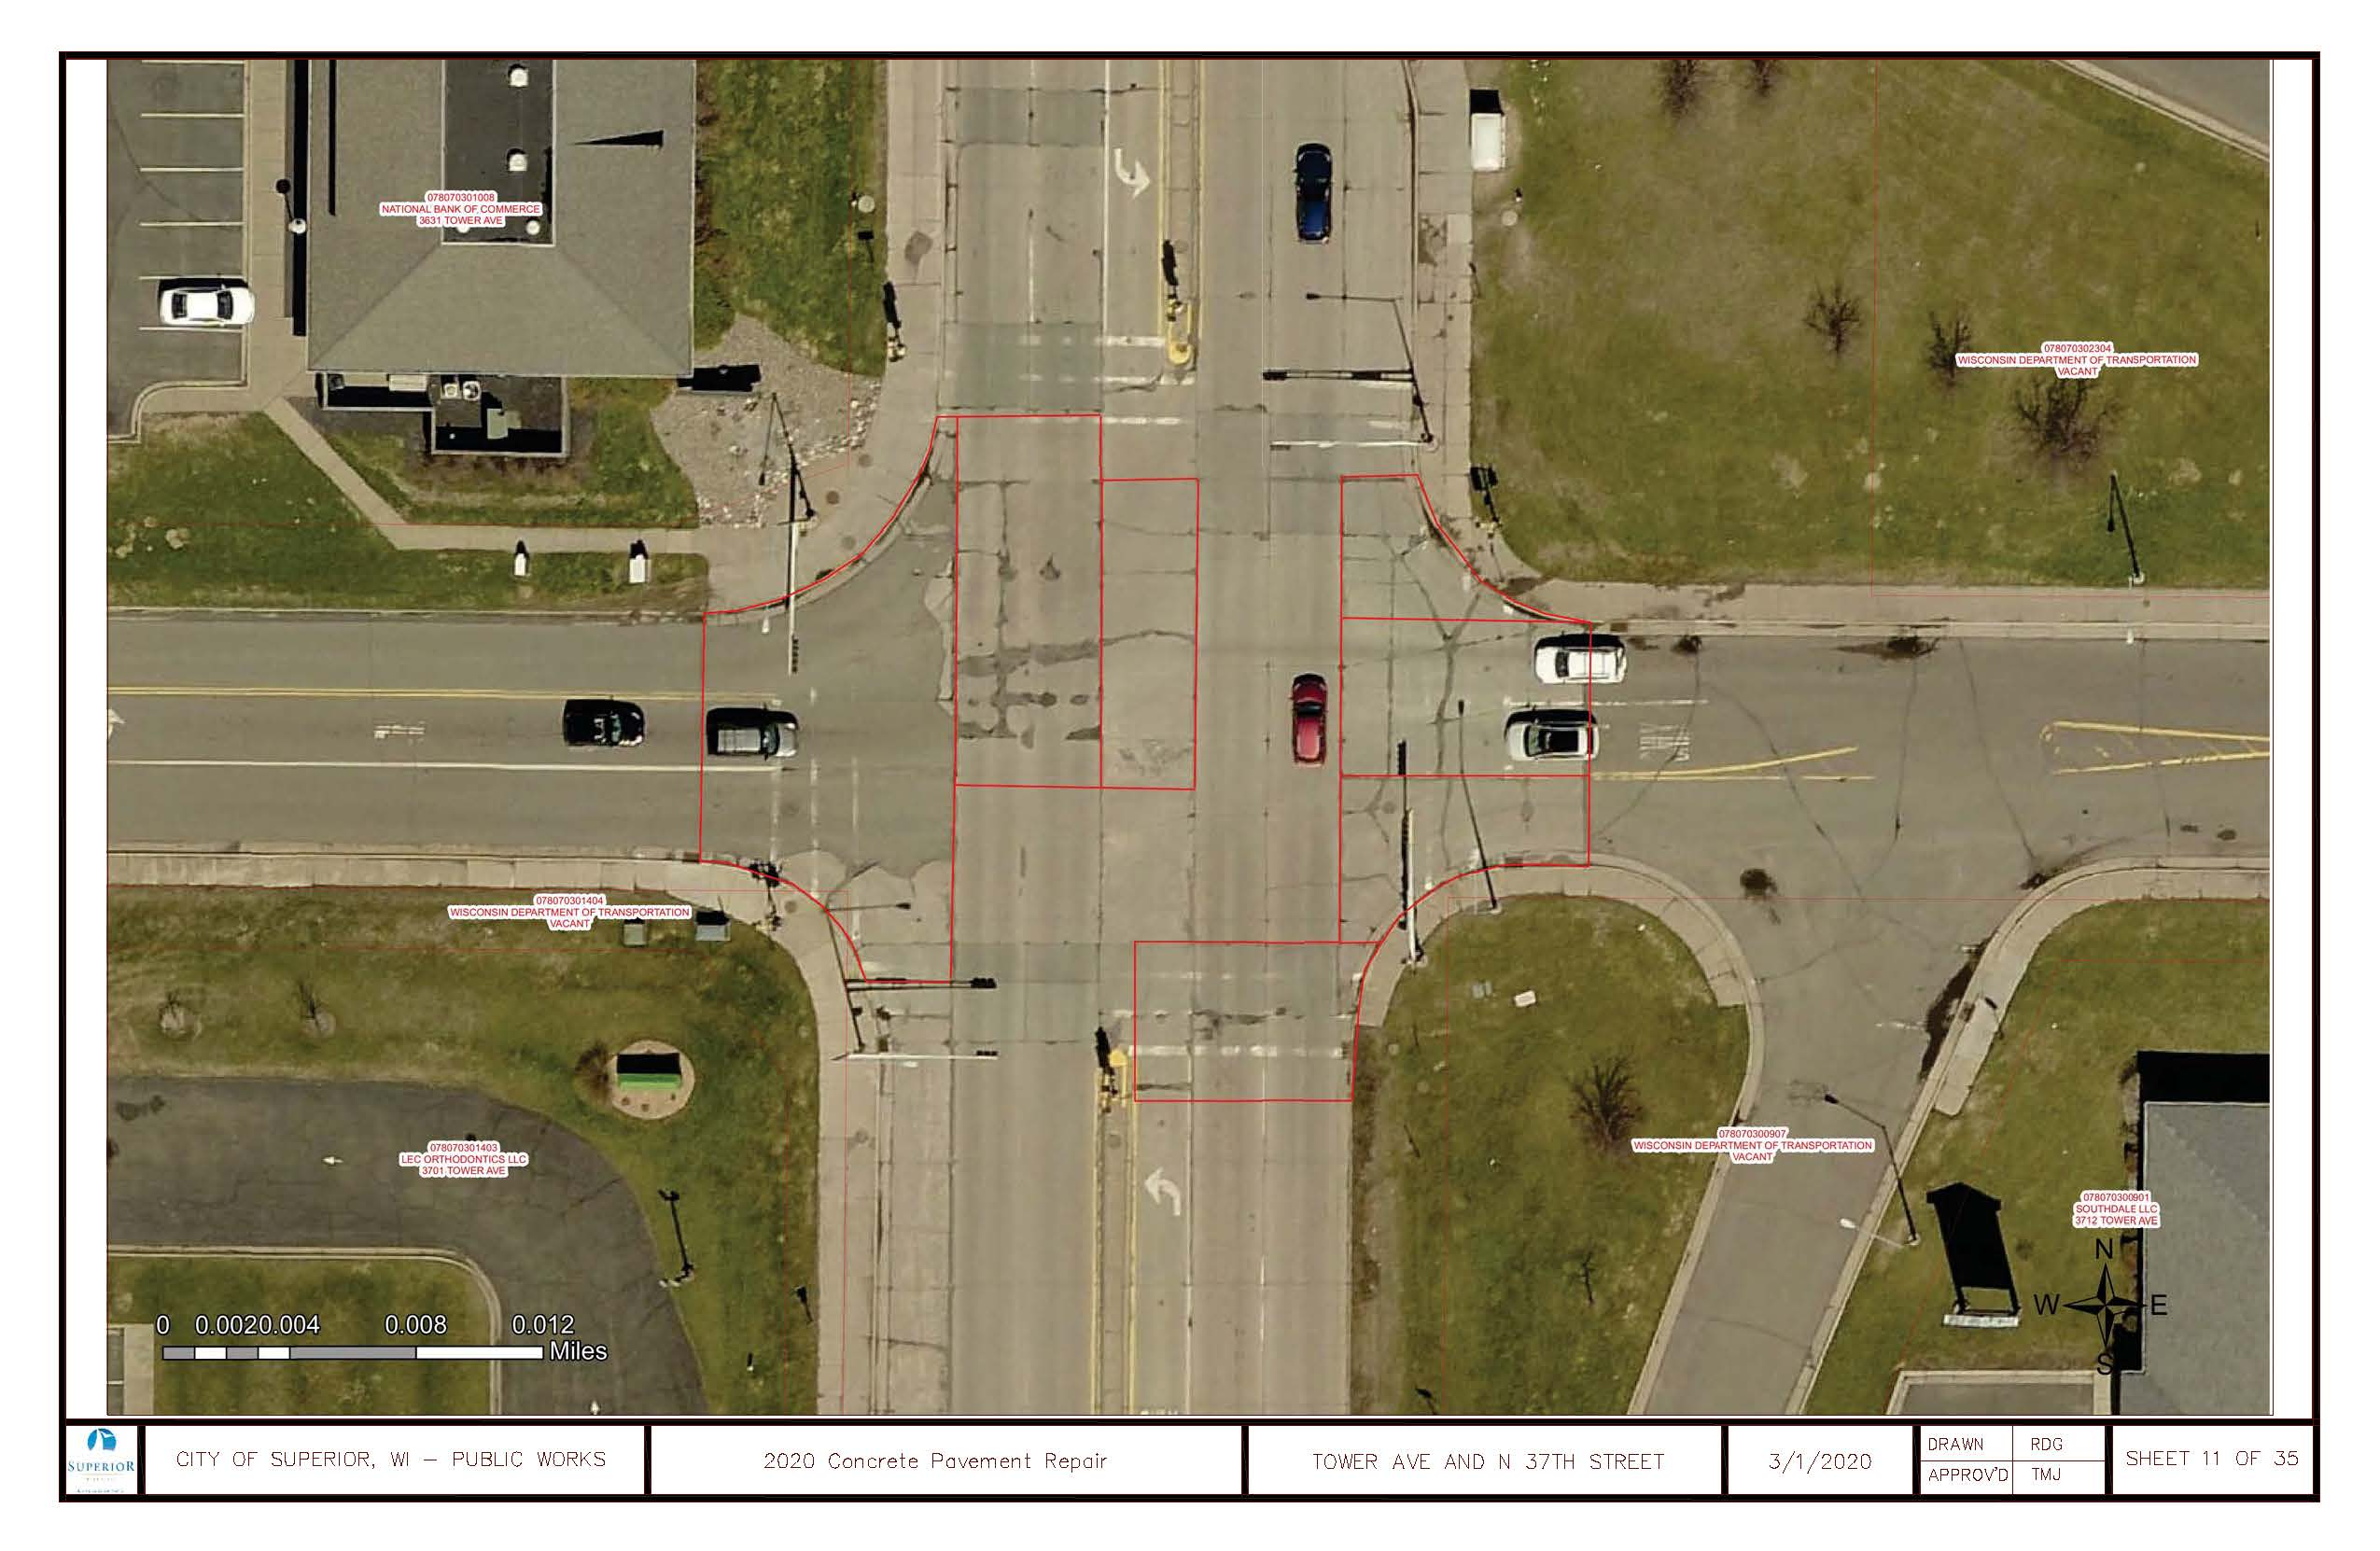 2020 Concrete Pavement Repair Tower Ave and N 37th St.